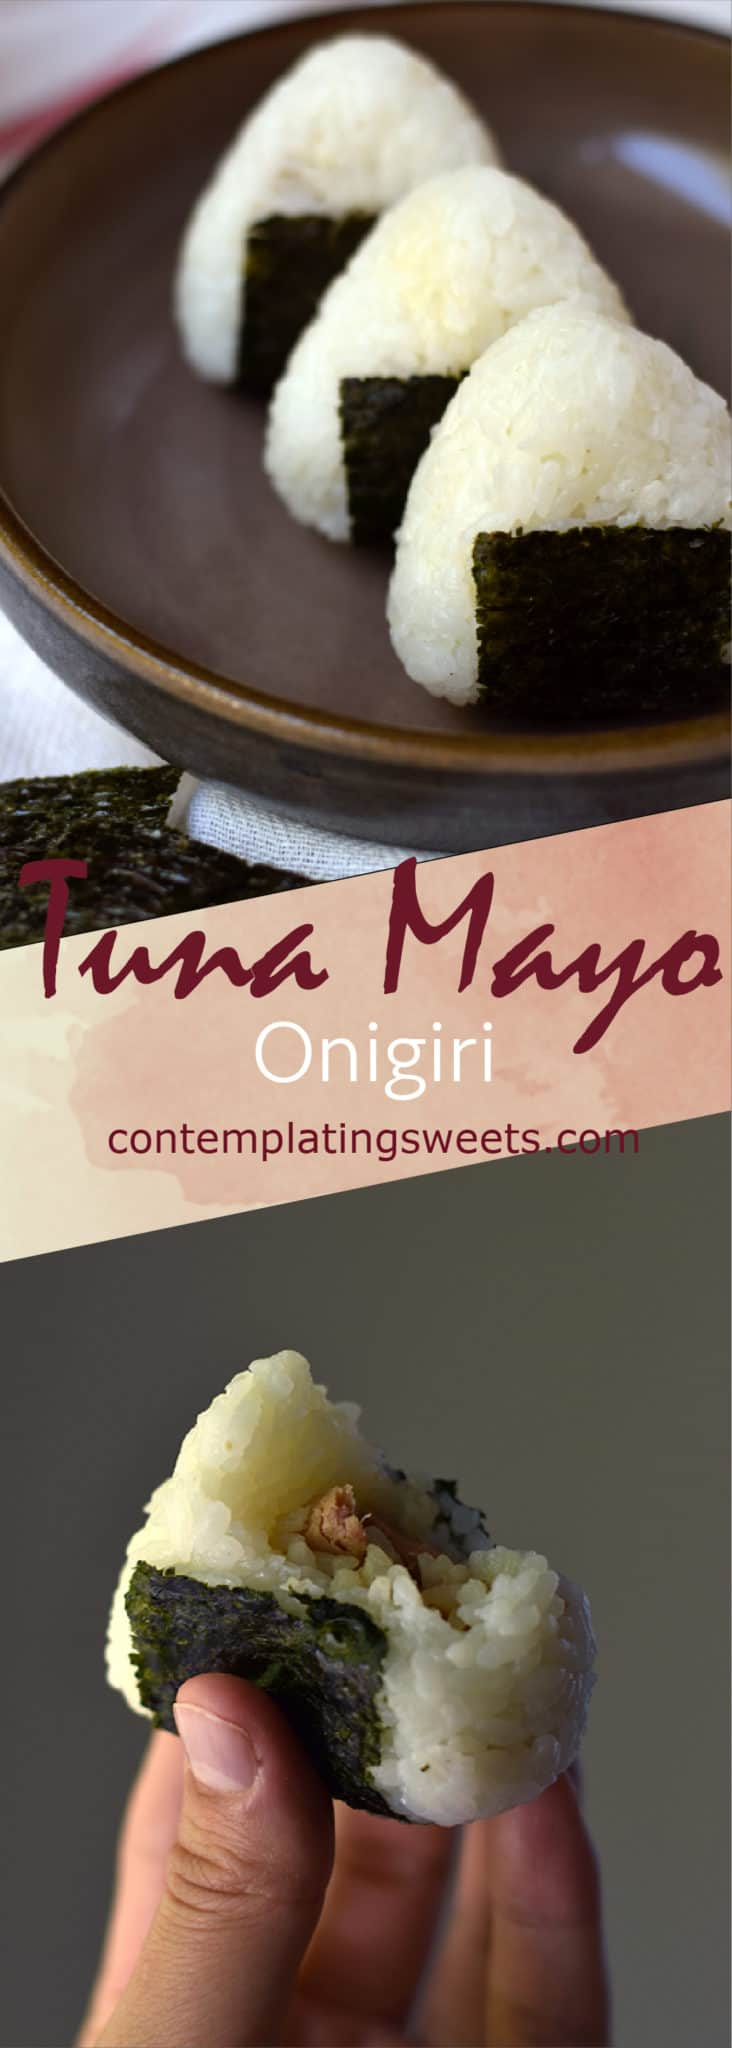 Tuna mayo onigiri, or rice ball, is a simple and delicious Japanese snack. Rice is filled with a flavorful tuna and mayonnaise, shaped, and wrapped with a sheet of nori (seaweed).